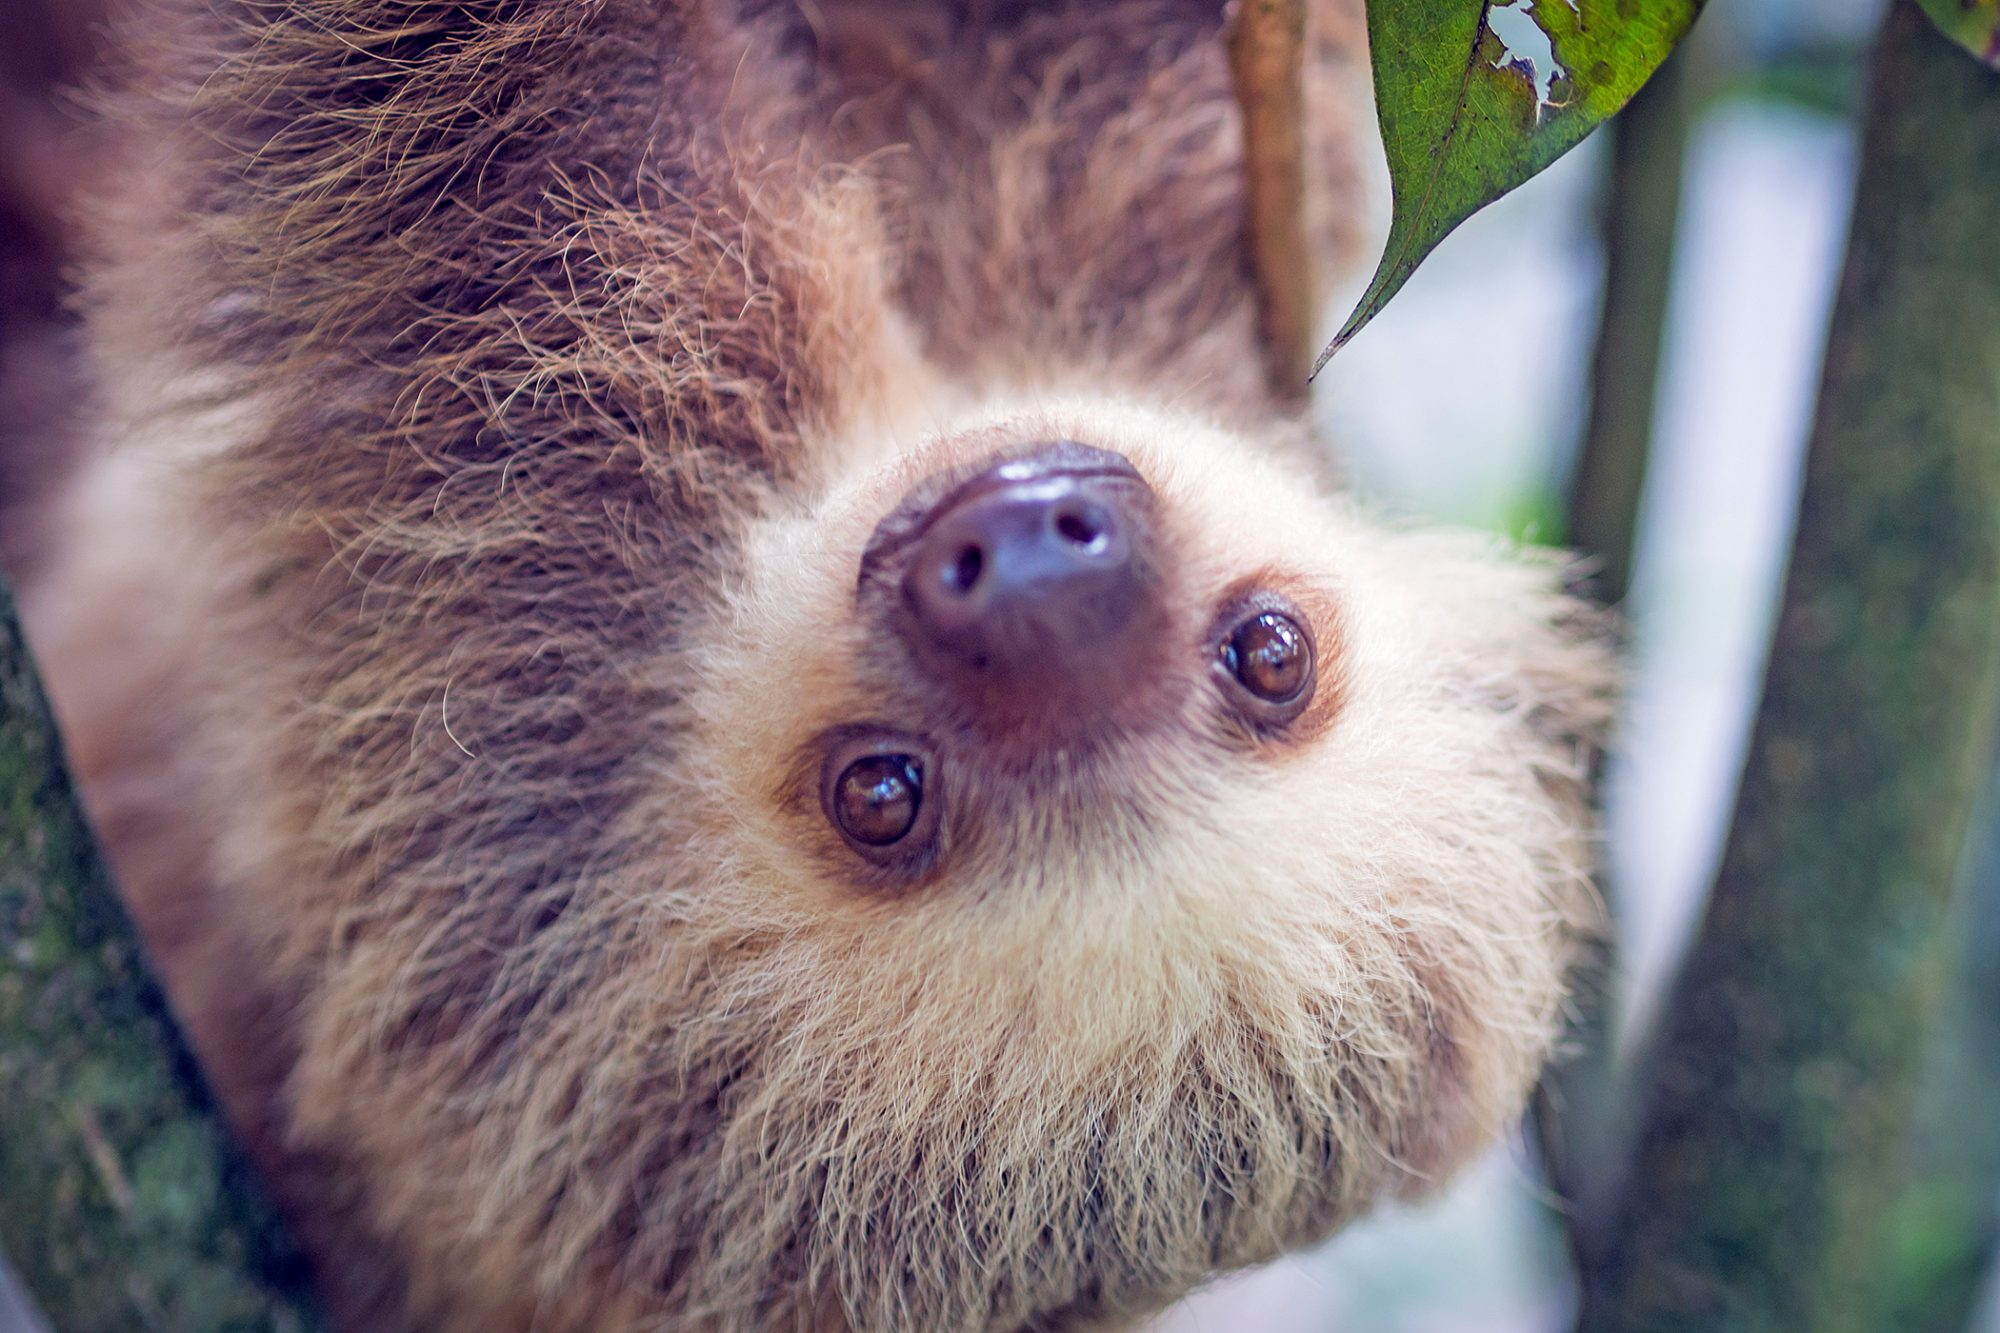 baby sloth hanging upside down